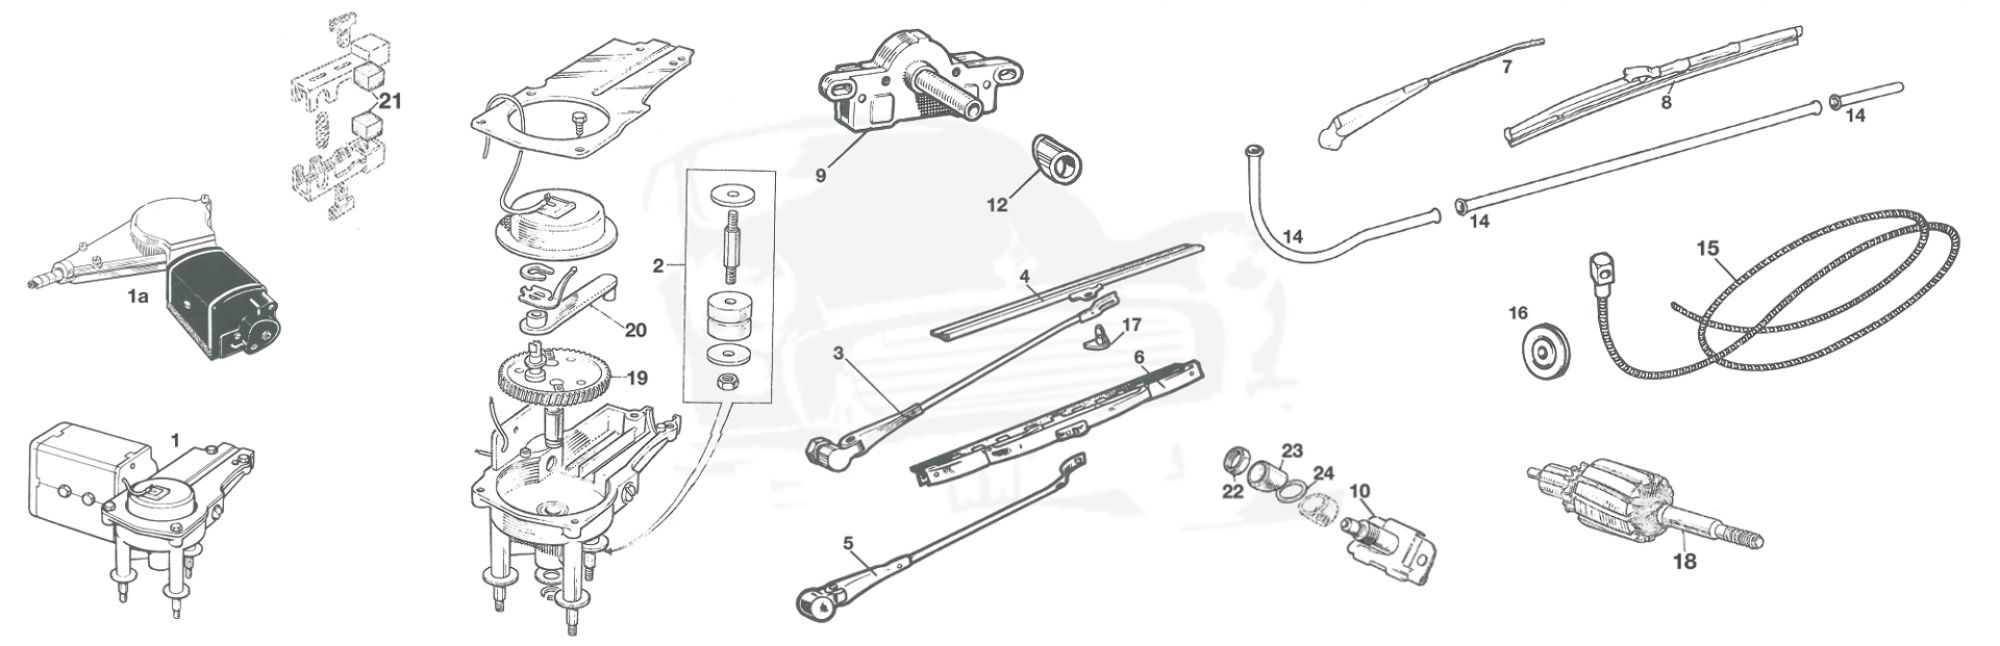 WINDSCREEN WIPER ASSEMBLY